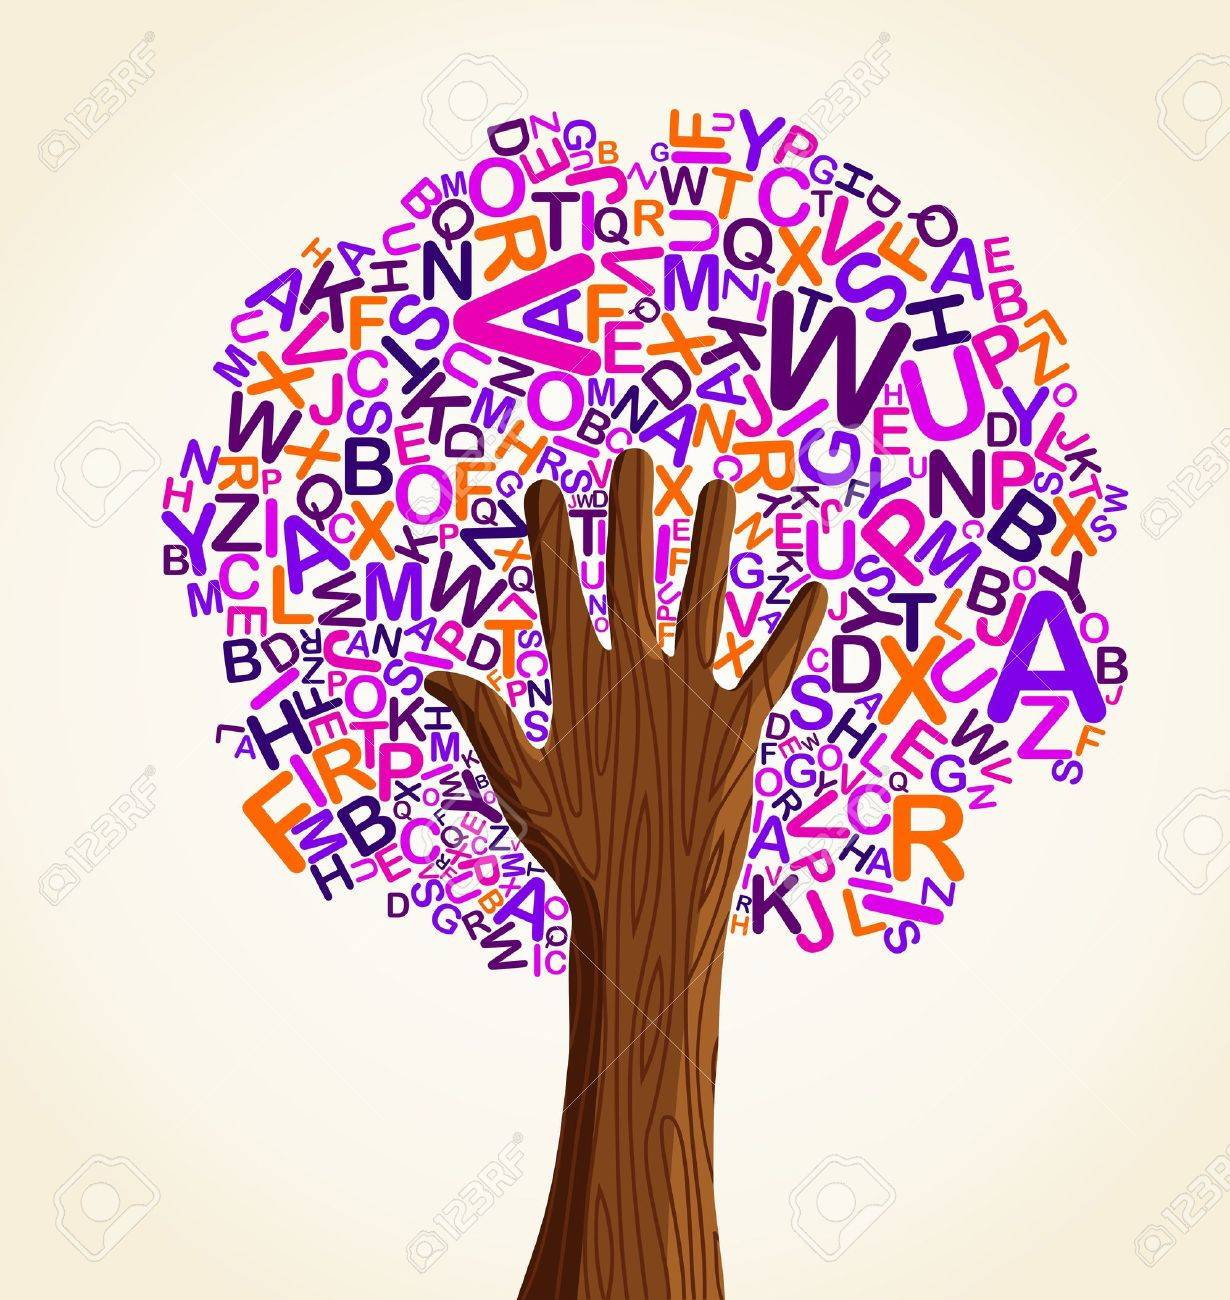 Learn to read at school education concept tree hand. Vector file layered for easy manipulation and custom coloring. Stock Vector - 14777579